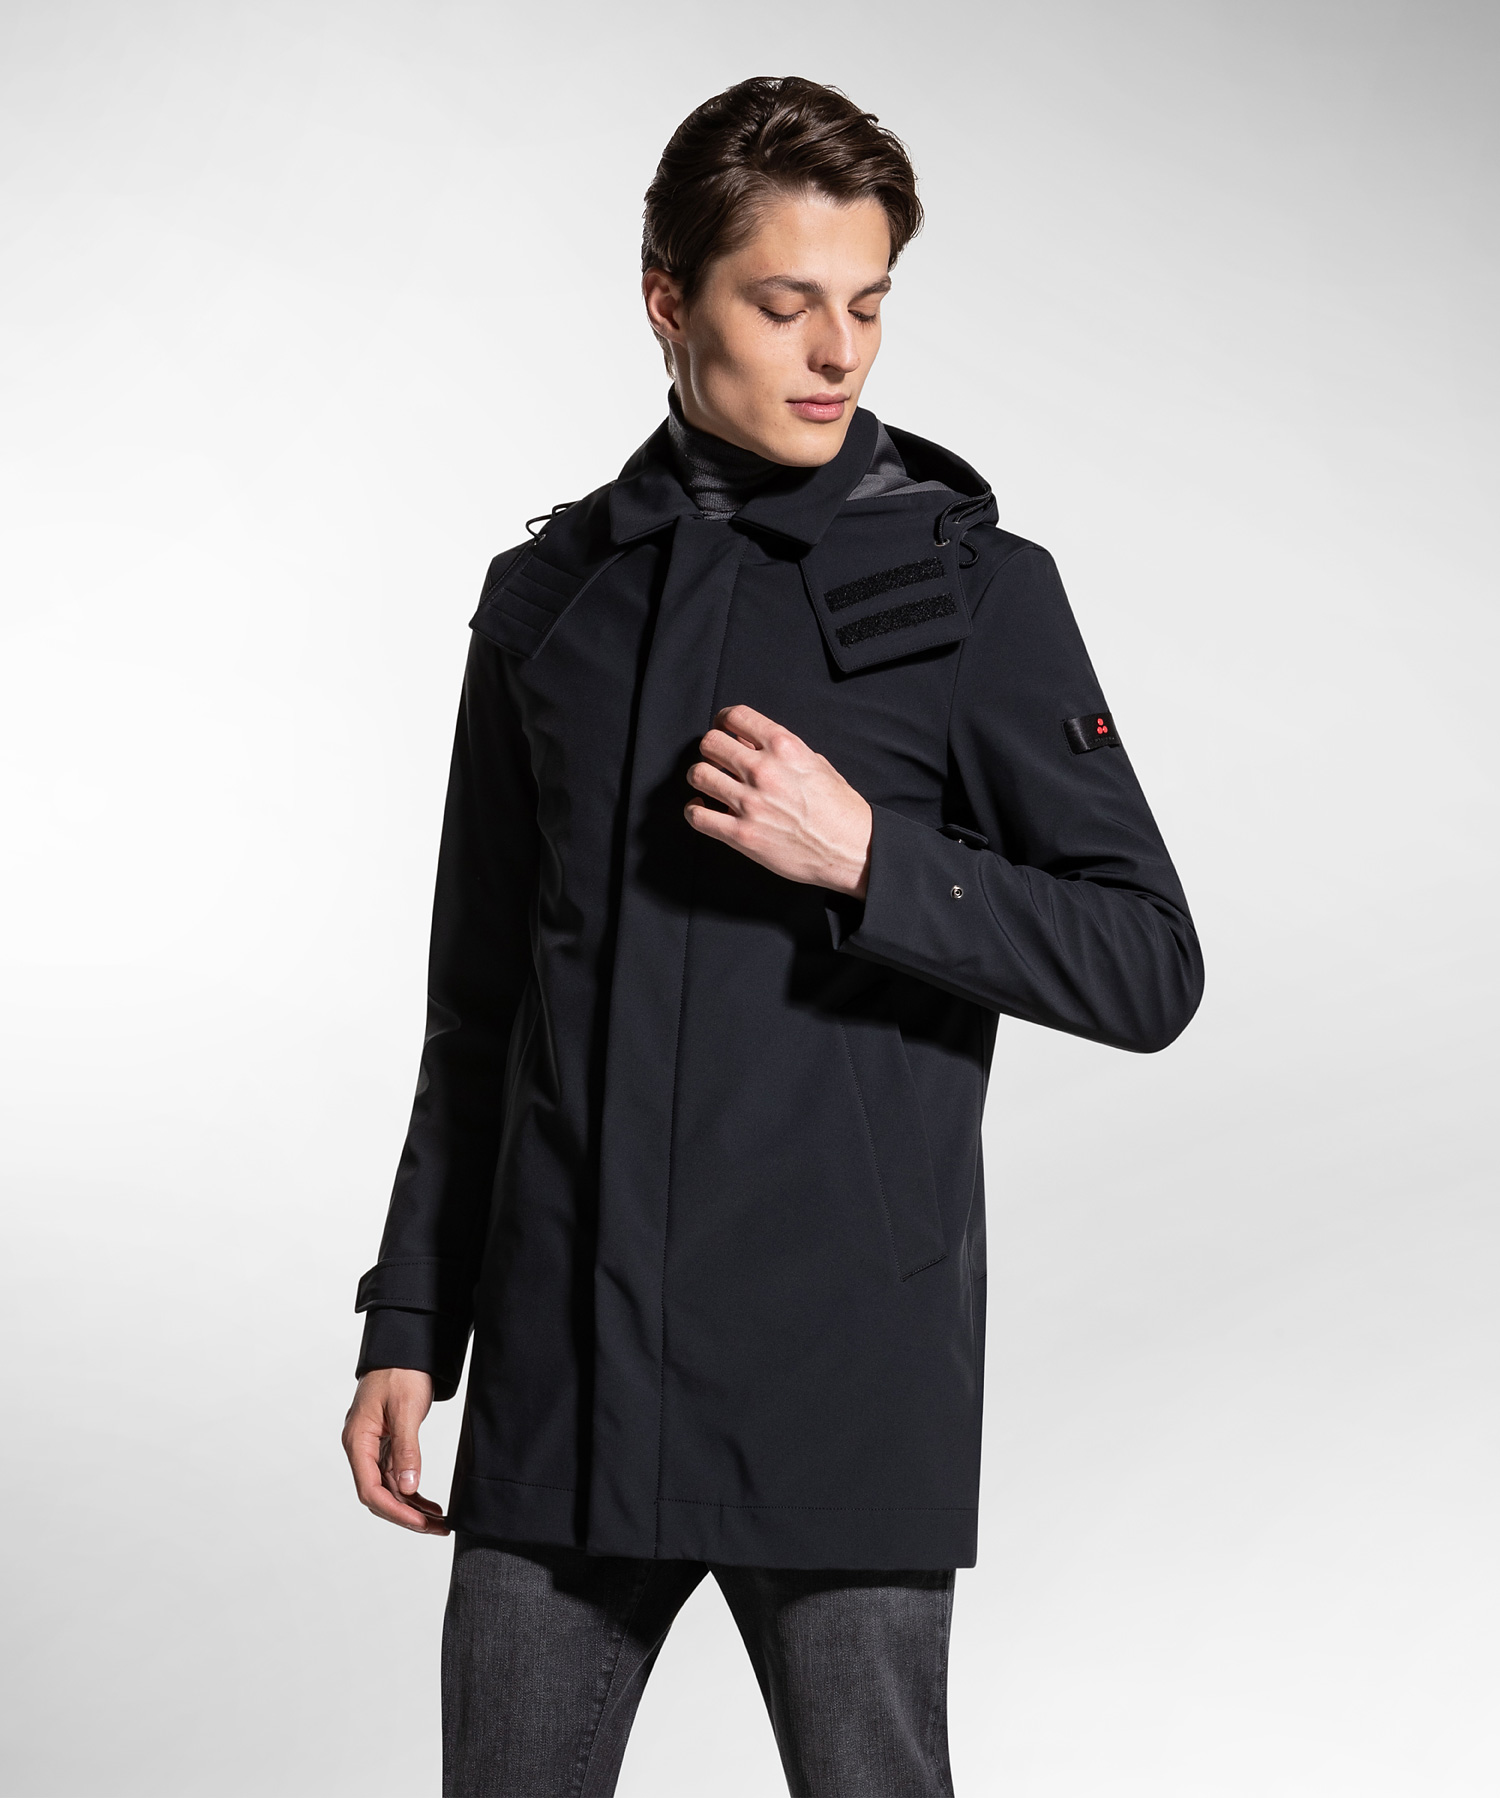 Groff kp - trench coat in padded technical fabric PEUTEREY | Coat | PEU3310NER